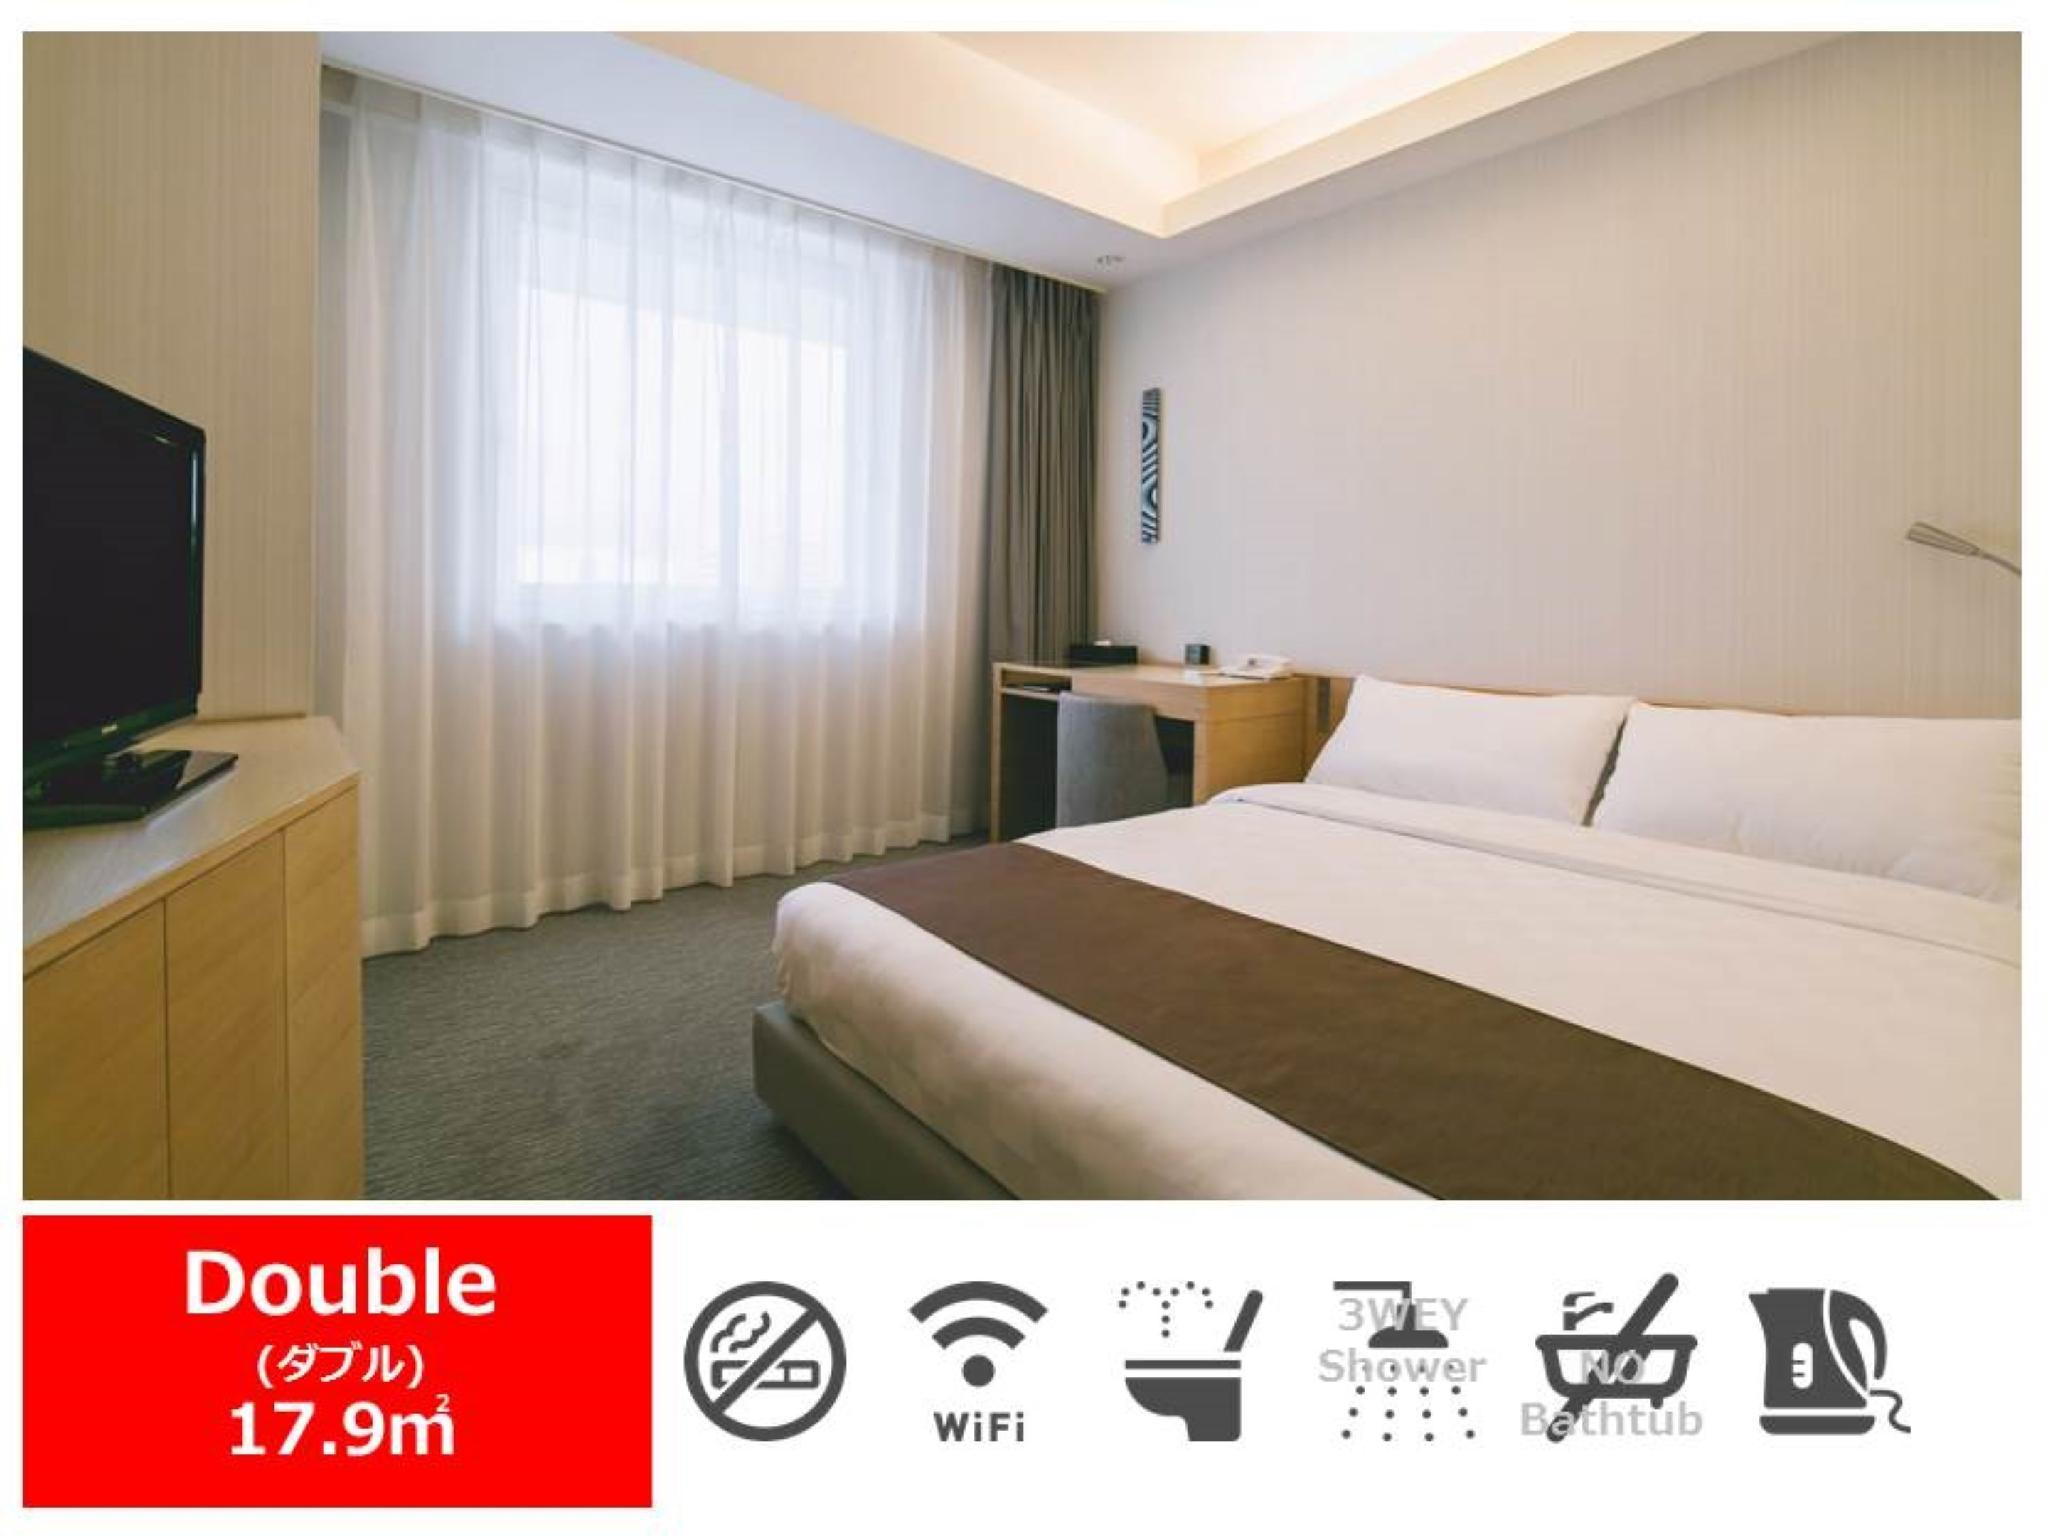 標準雙人大床房※無浴缸 (Standard Double Room *No bath in room)